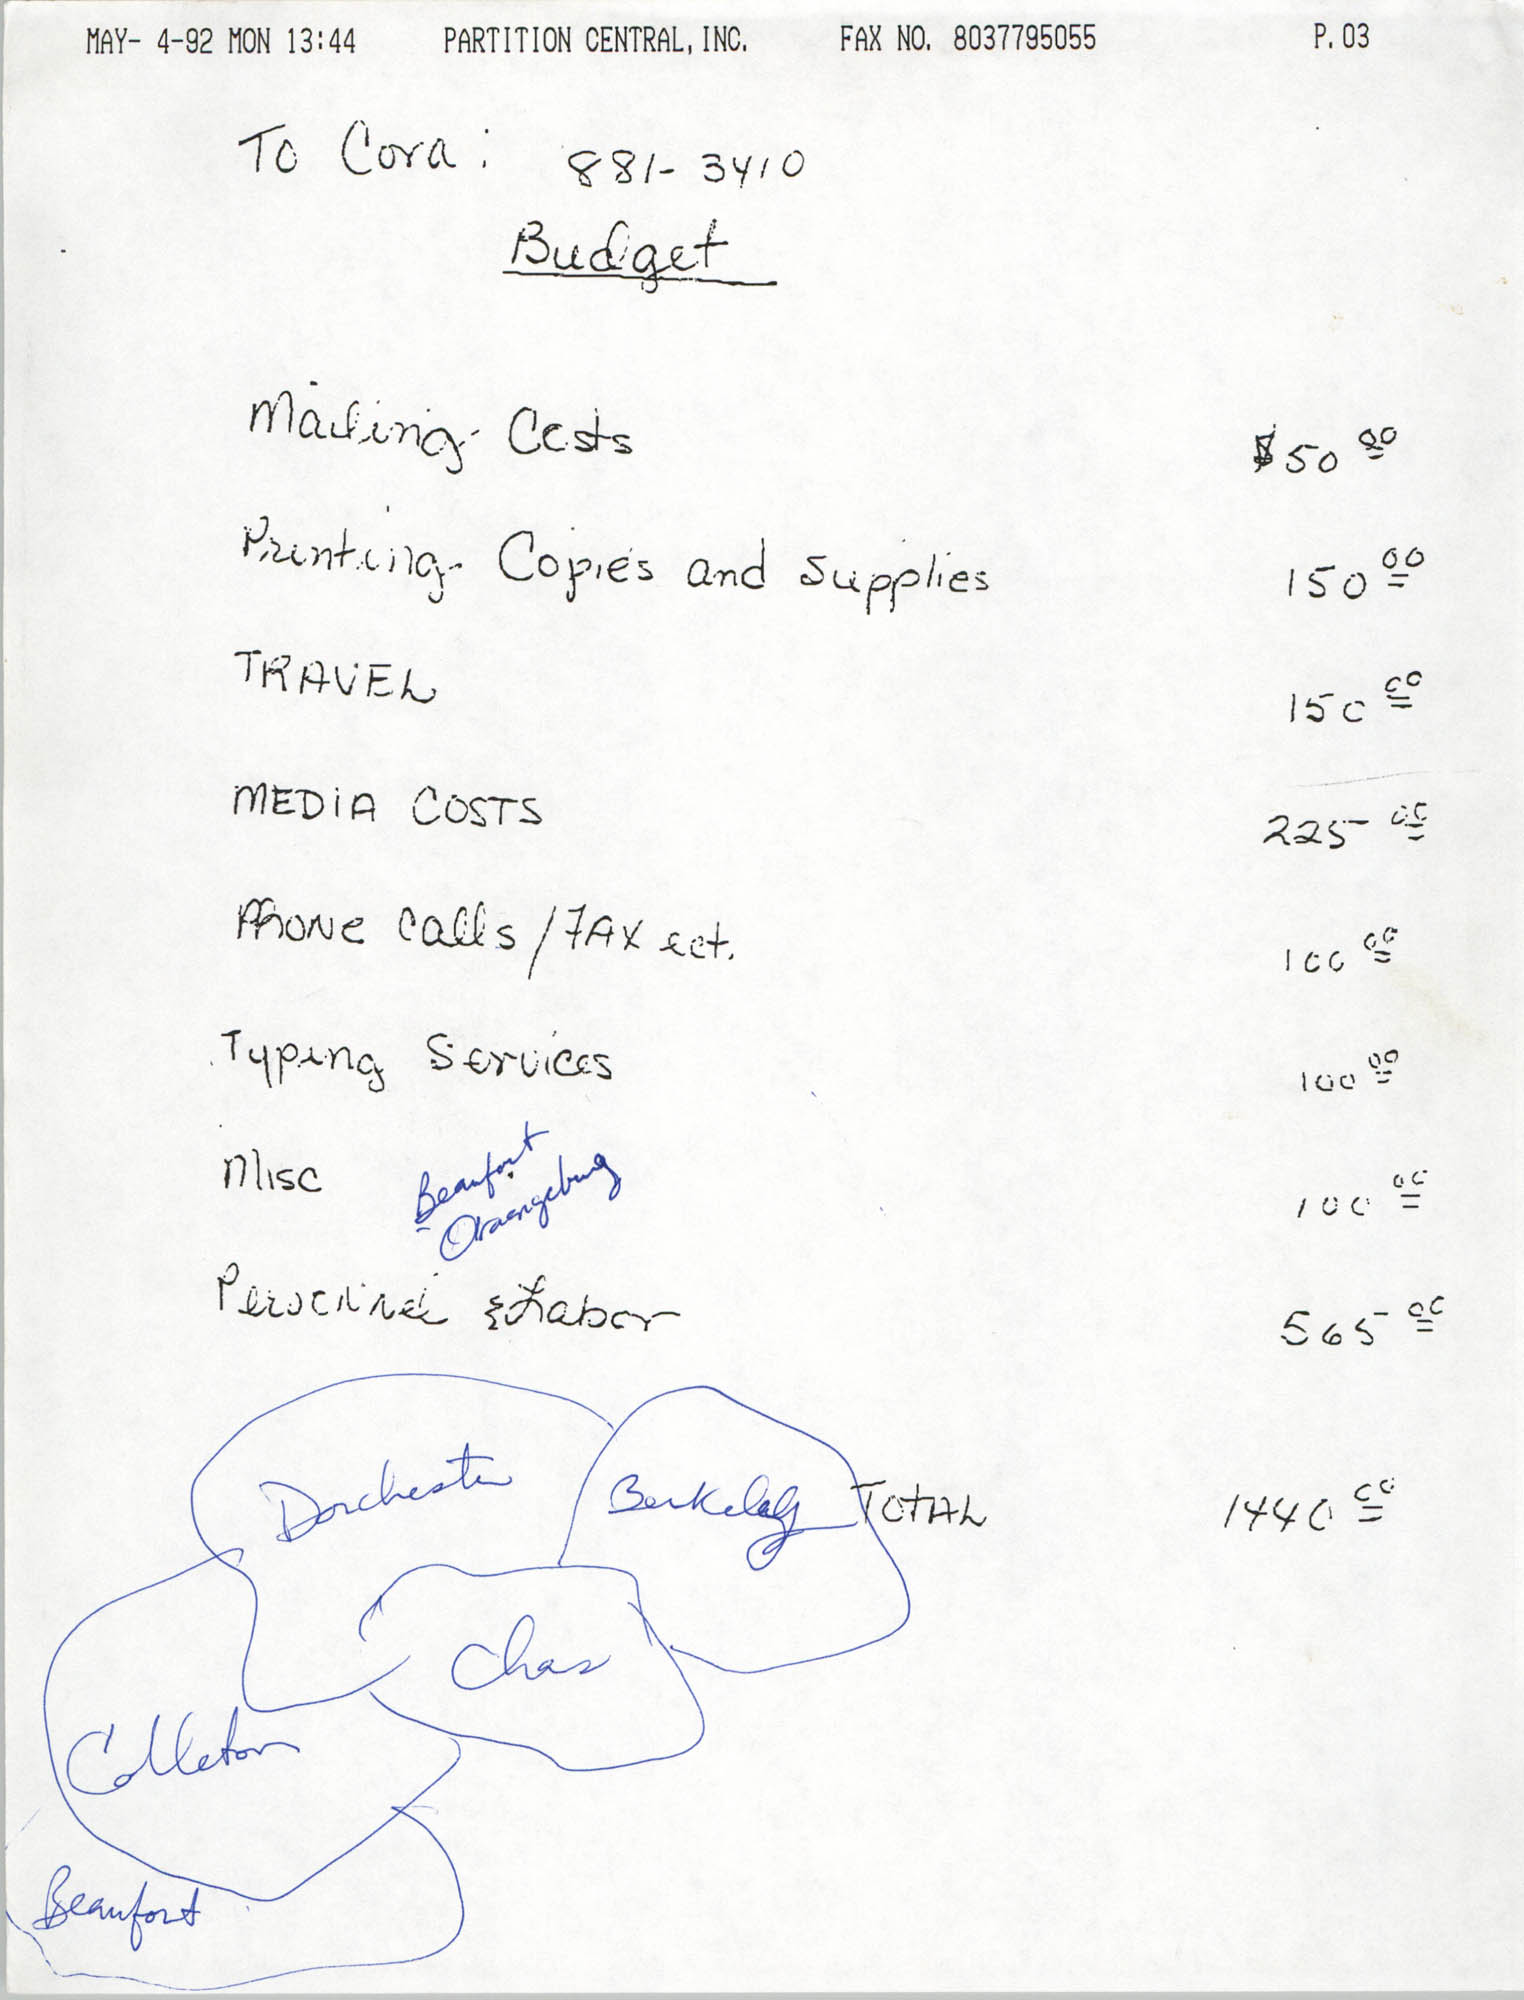 Handwritten Budget, May 4, 1992